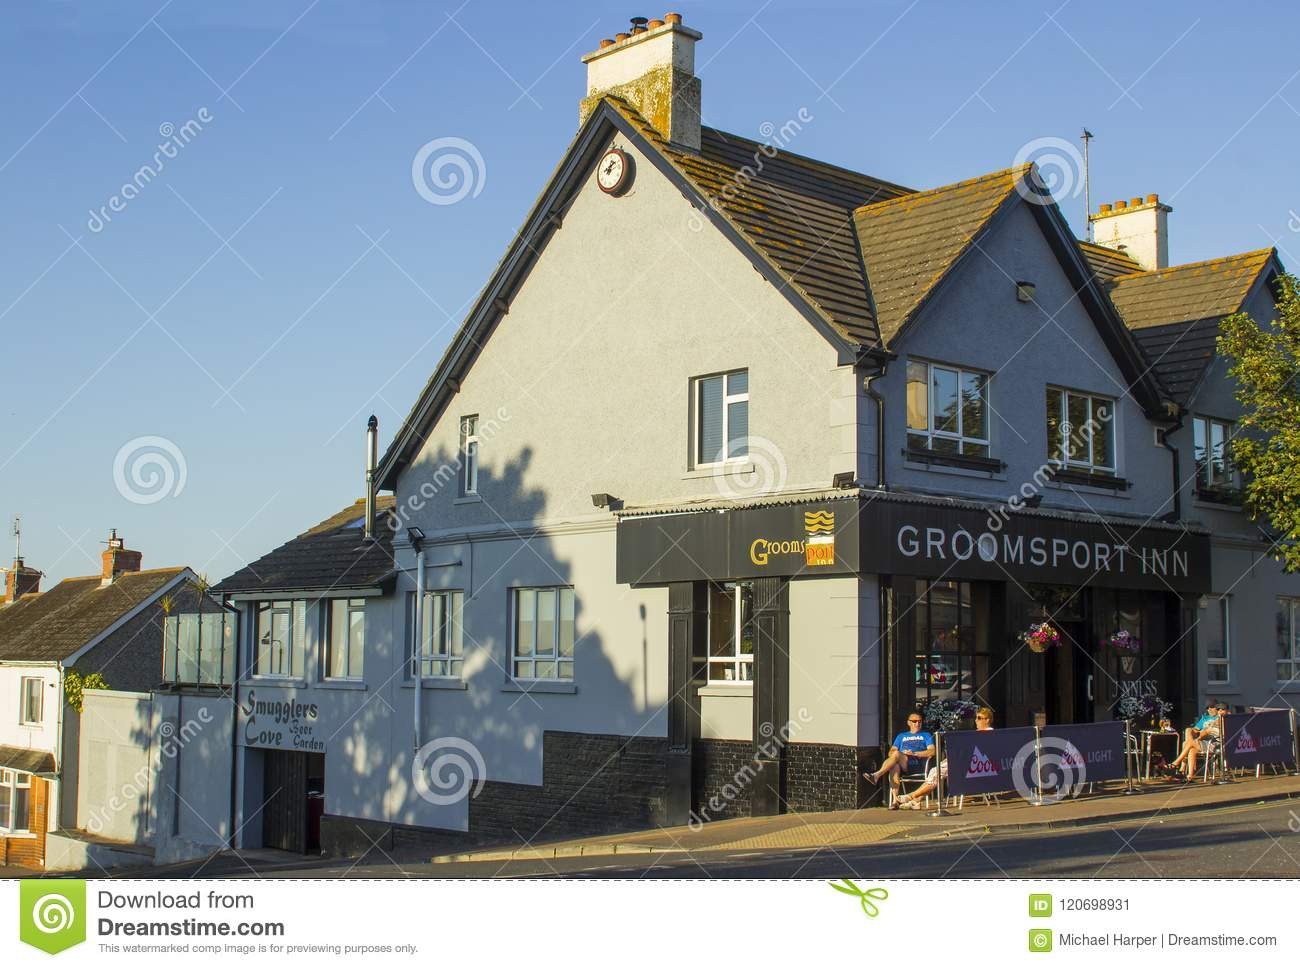 Customers drinking at a table outside the village pub at Groomsport in County Down Northern Ireland